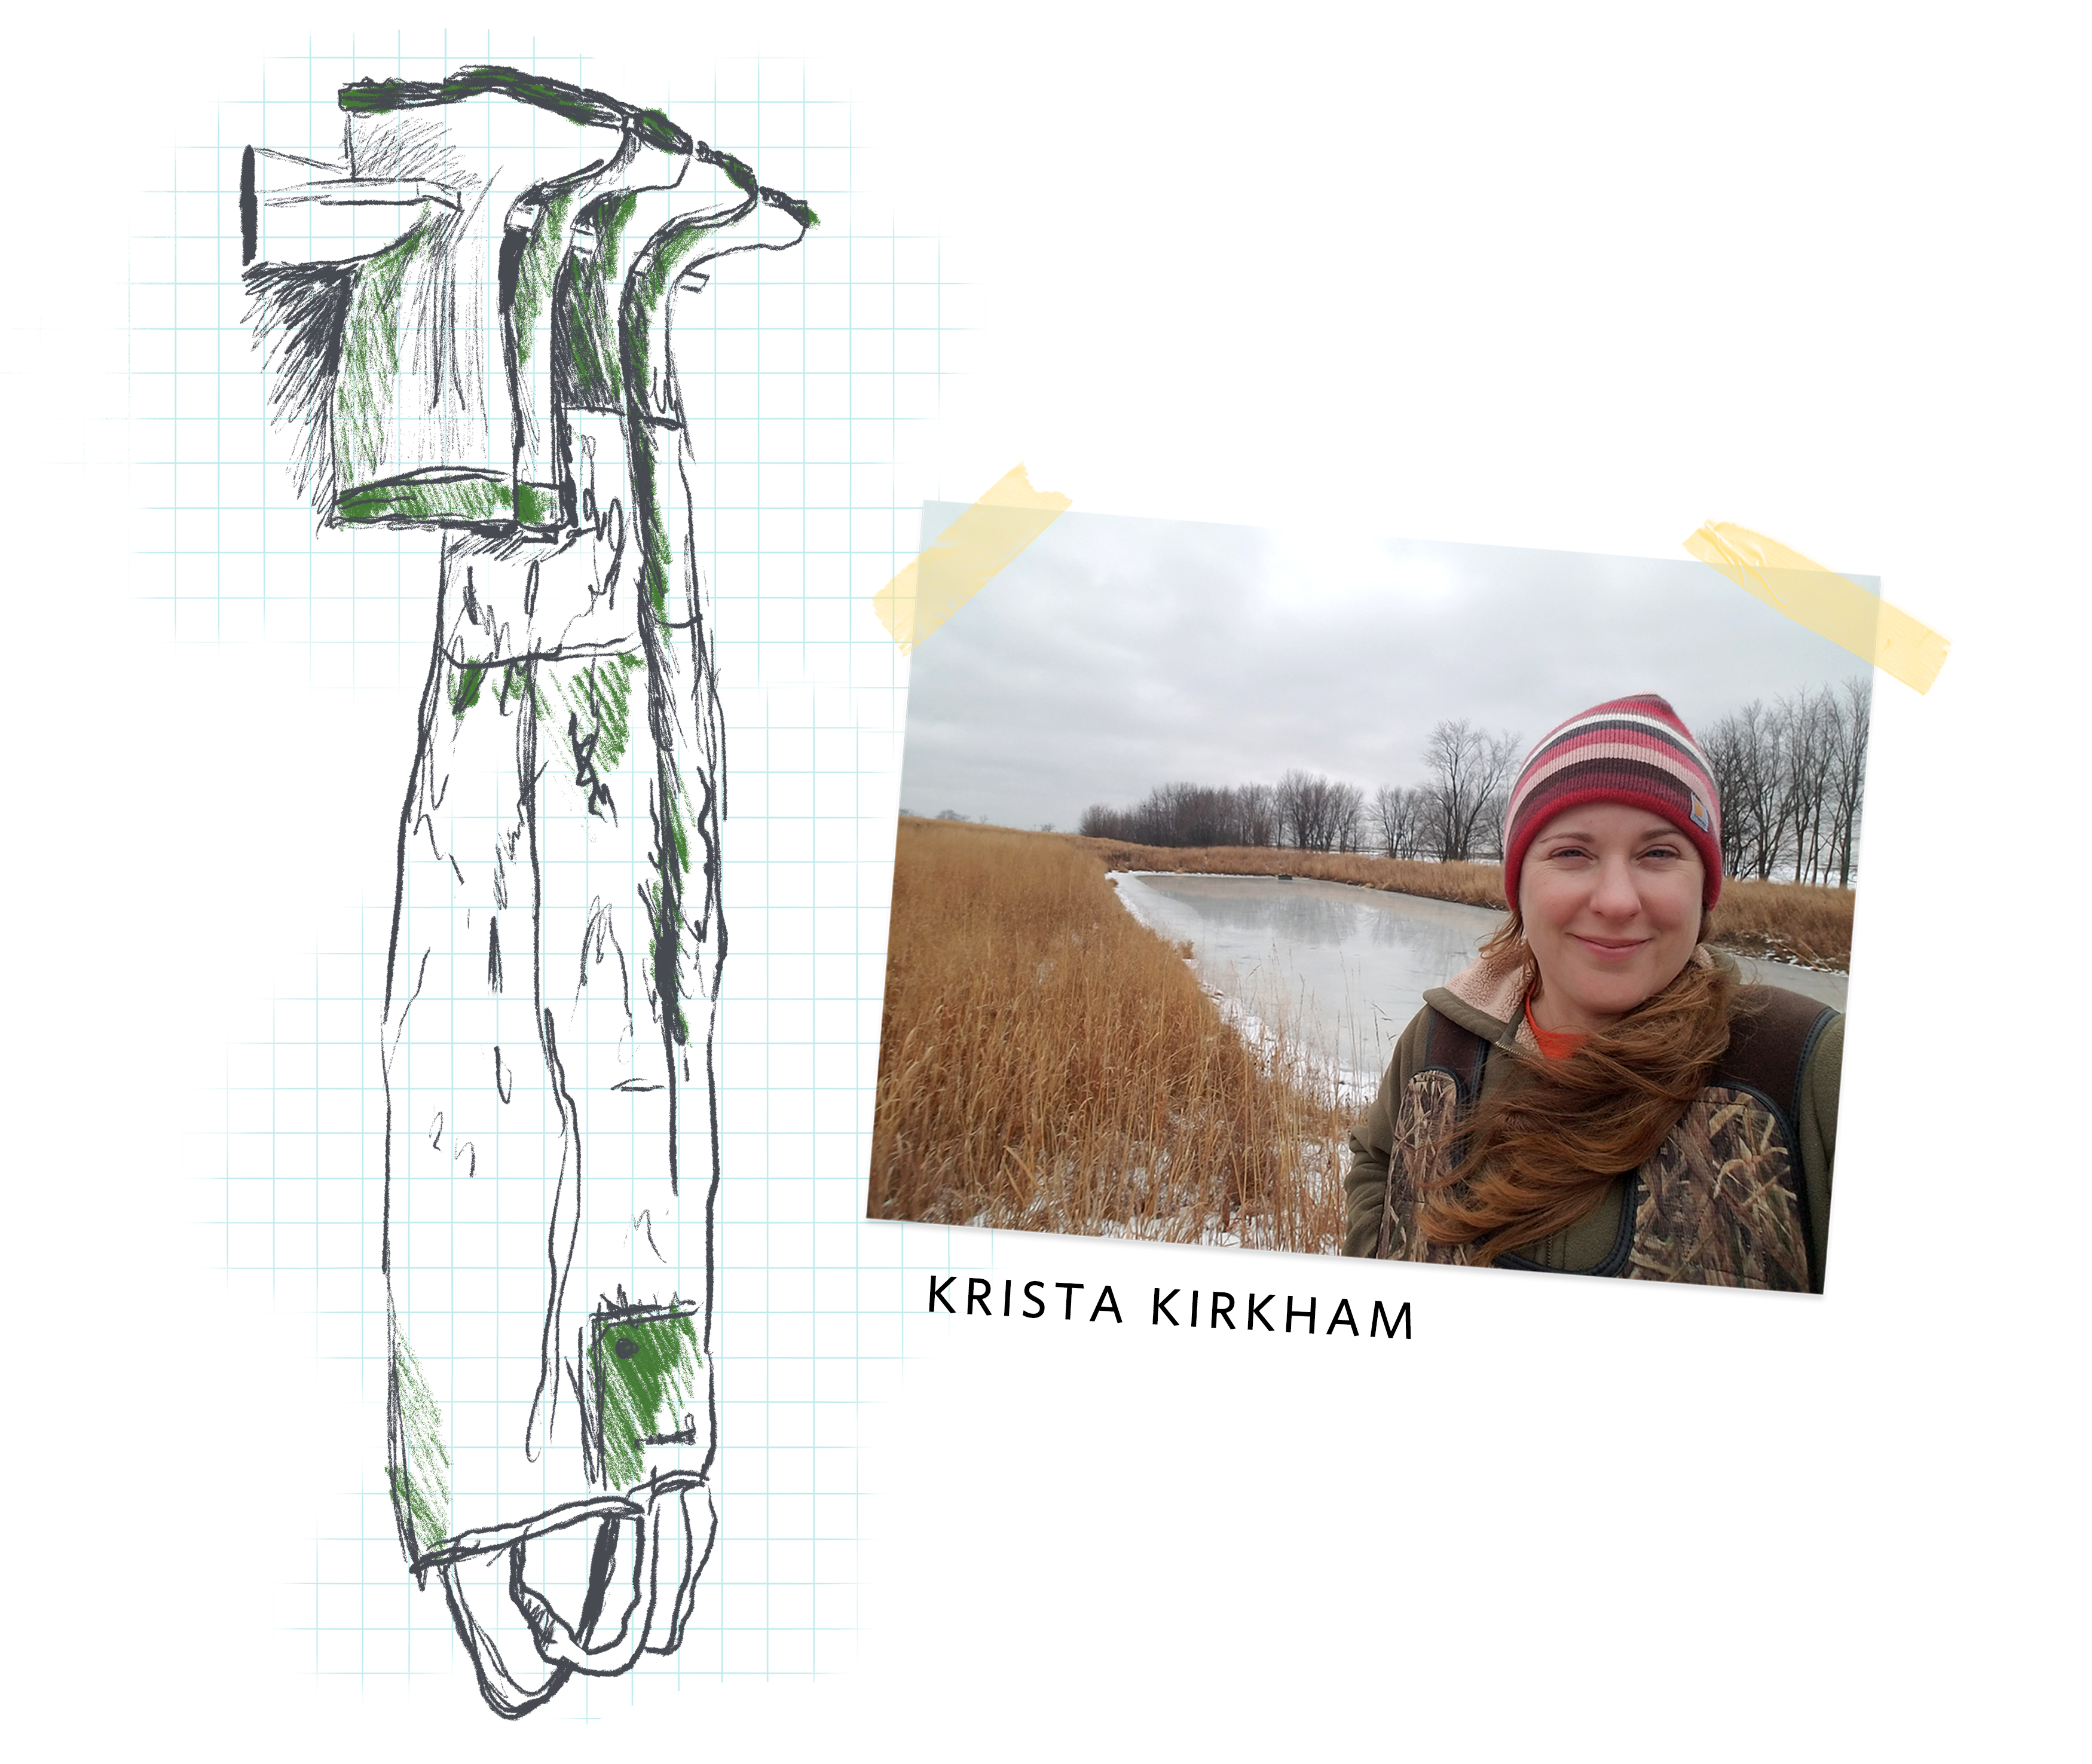 a sketchy illustration of waders hanging upside down, next to a photo of a smiling woman in a wetland